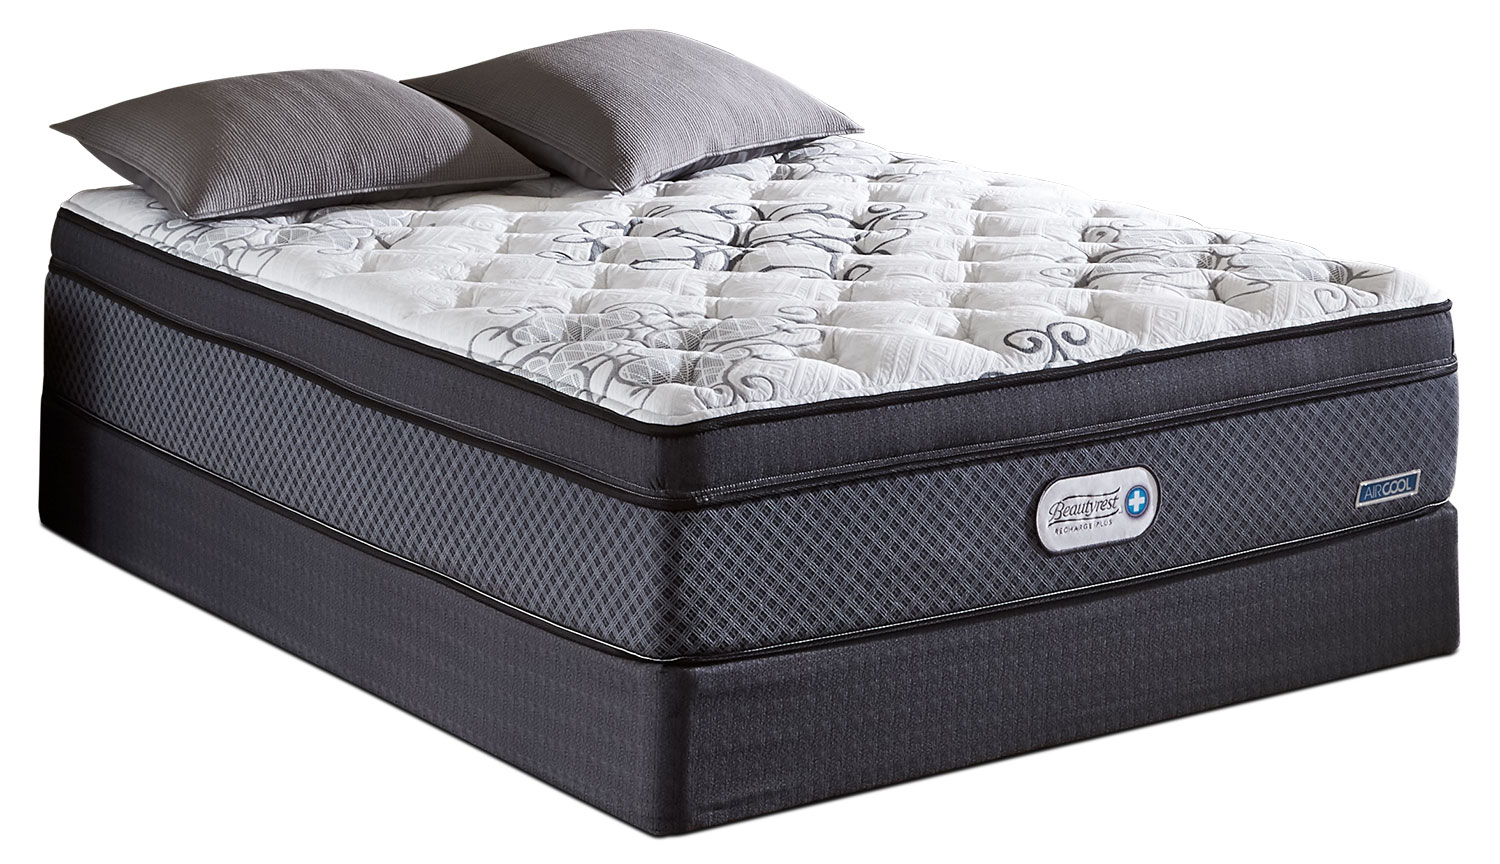 Beautyrest Recharge Plus Covington Euro-Top Luxury Firm Queen Mattress Set